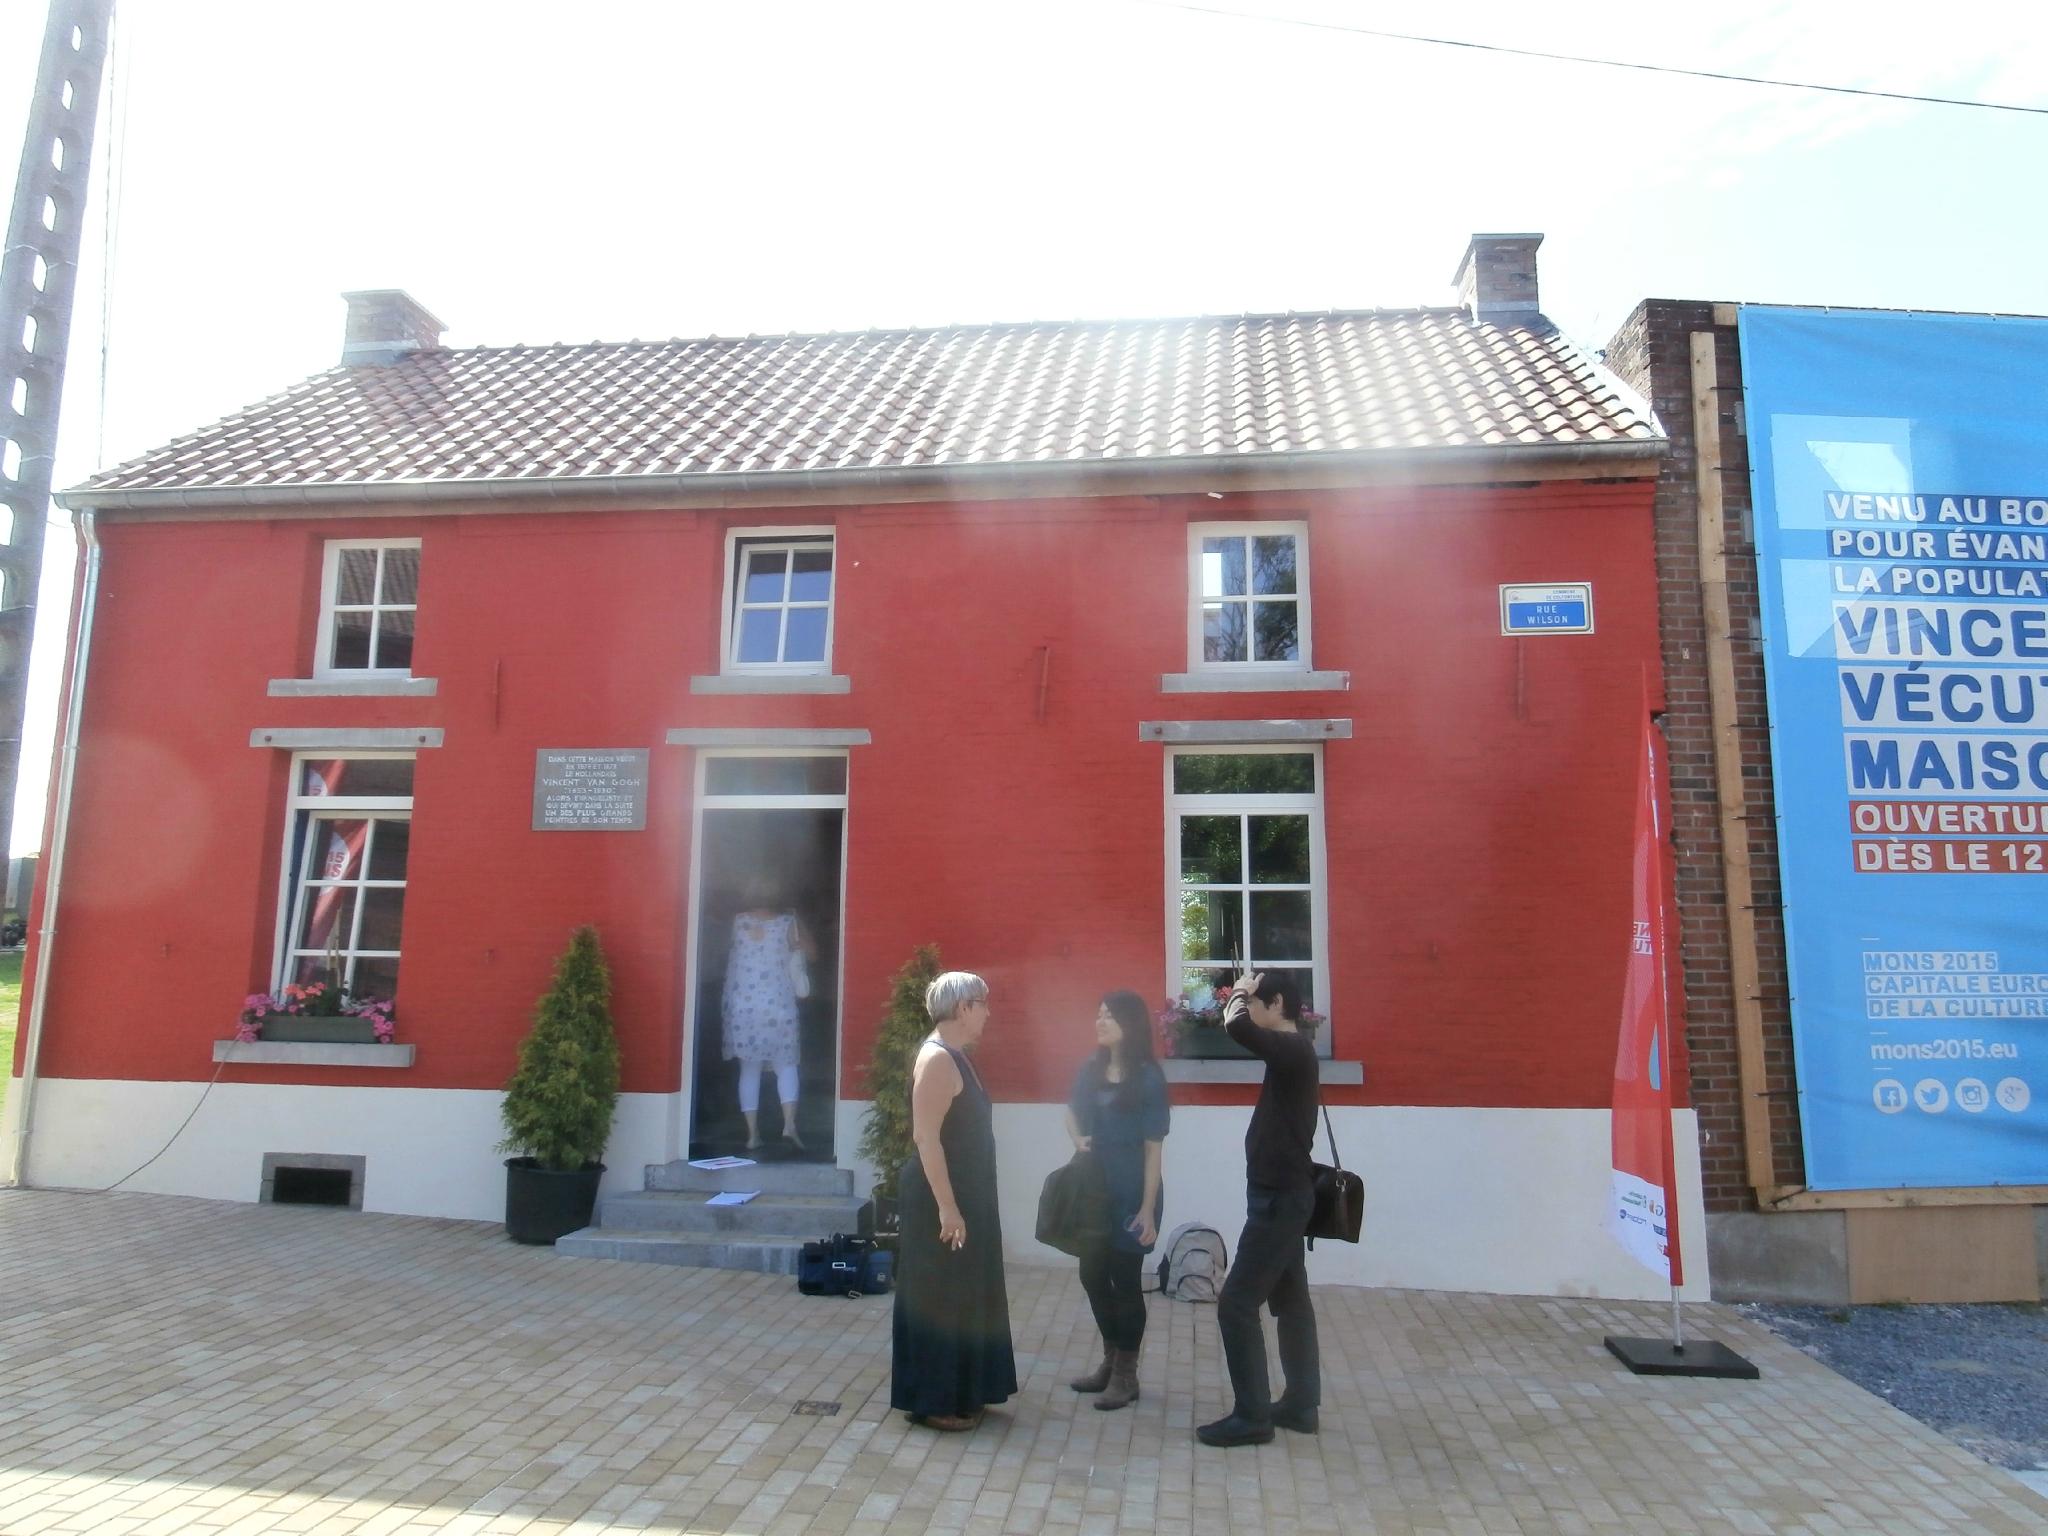 Wasmes : Maison Van Gogh : inauguration boutique / art shop